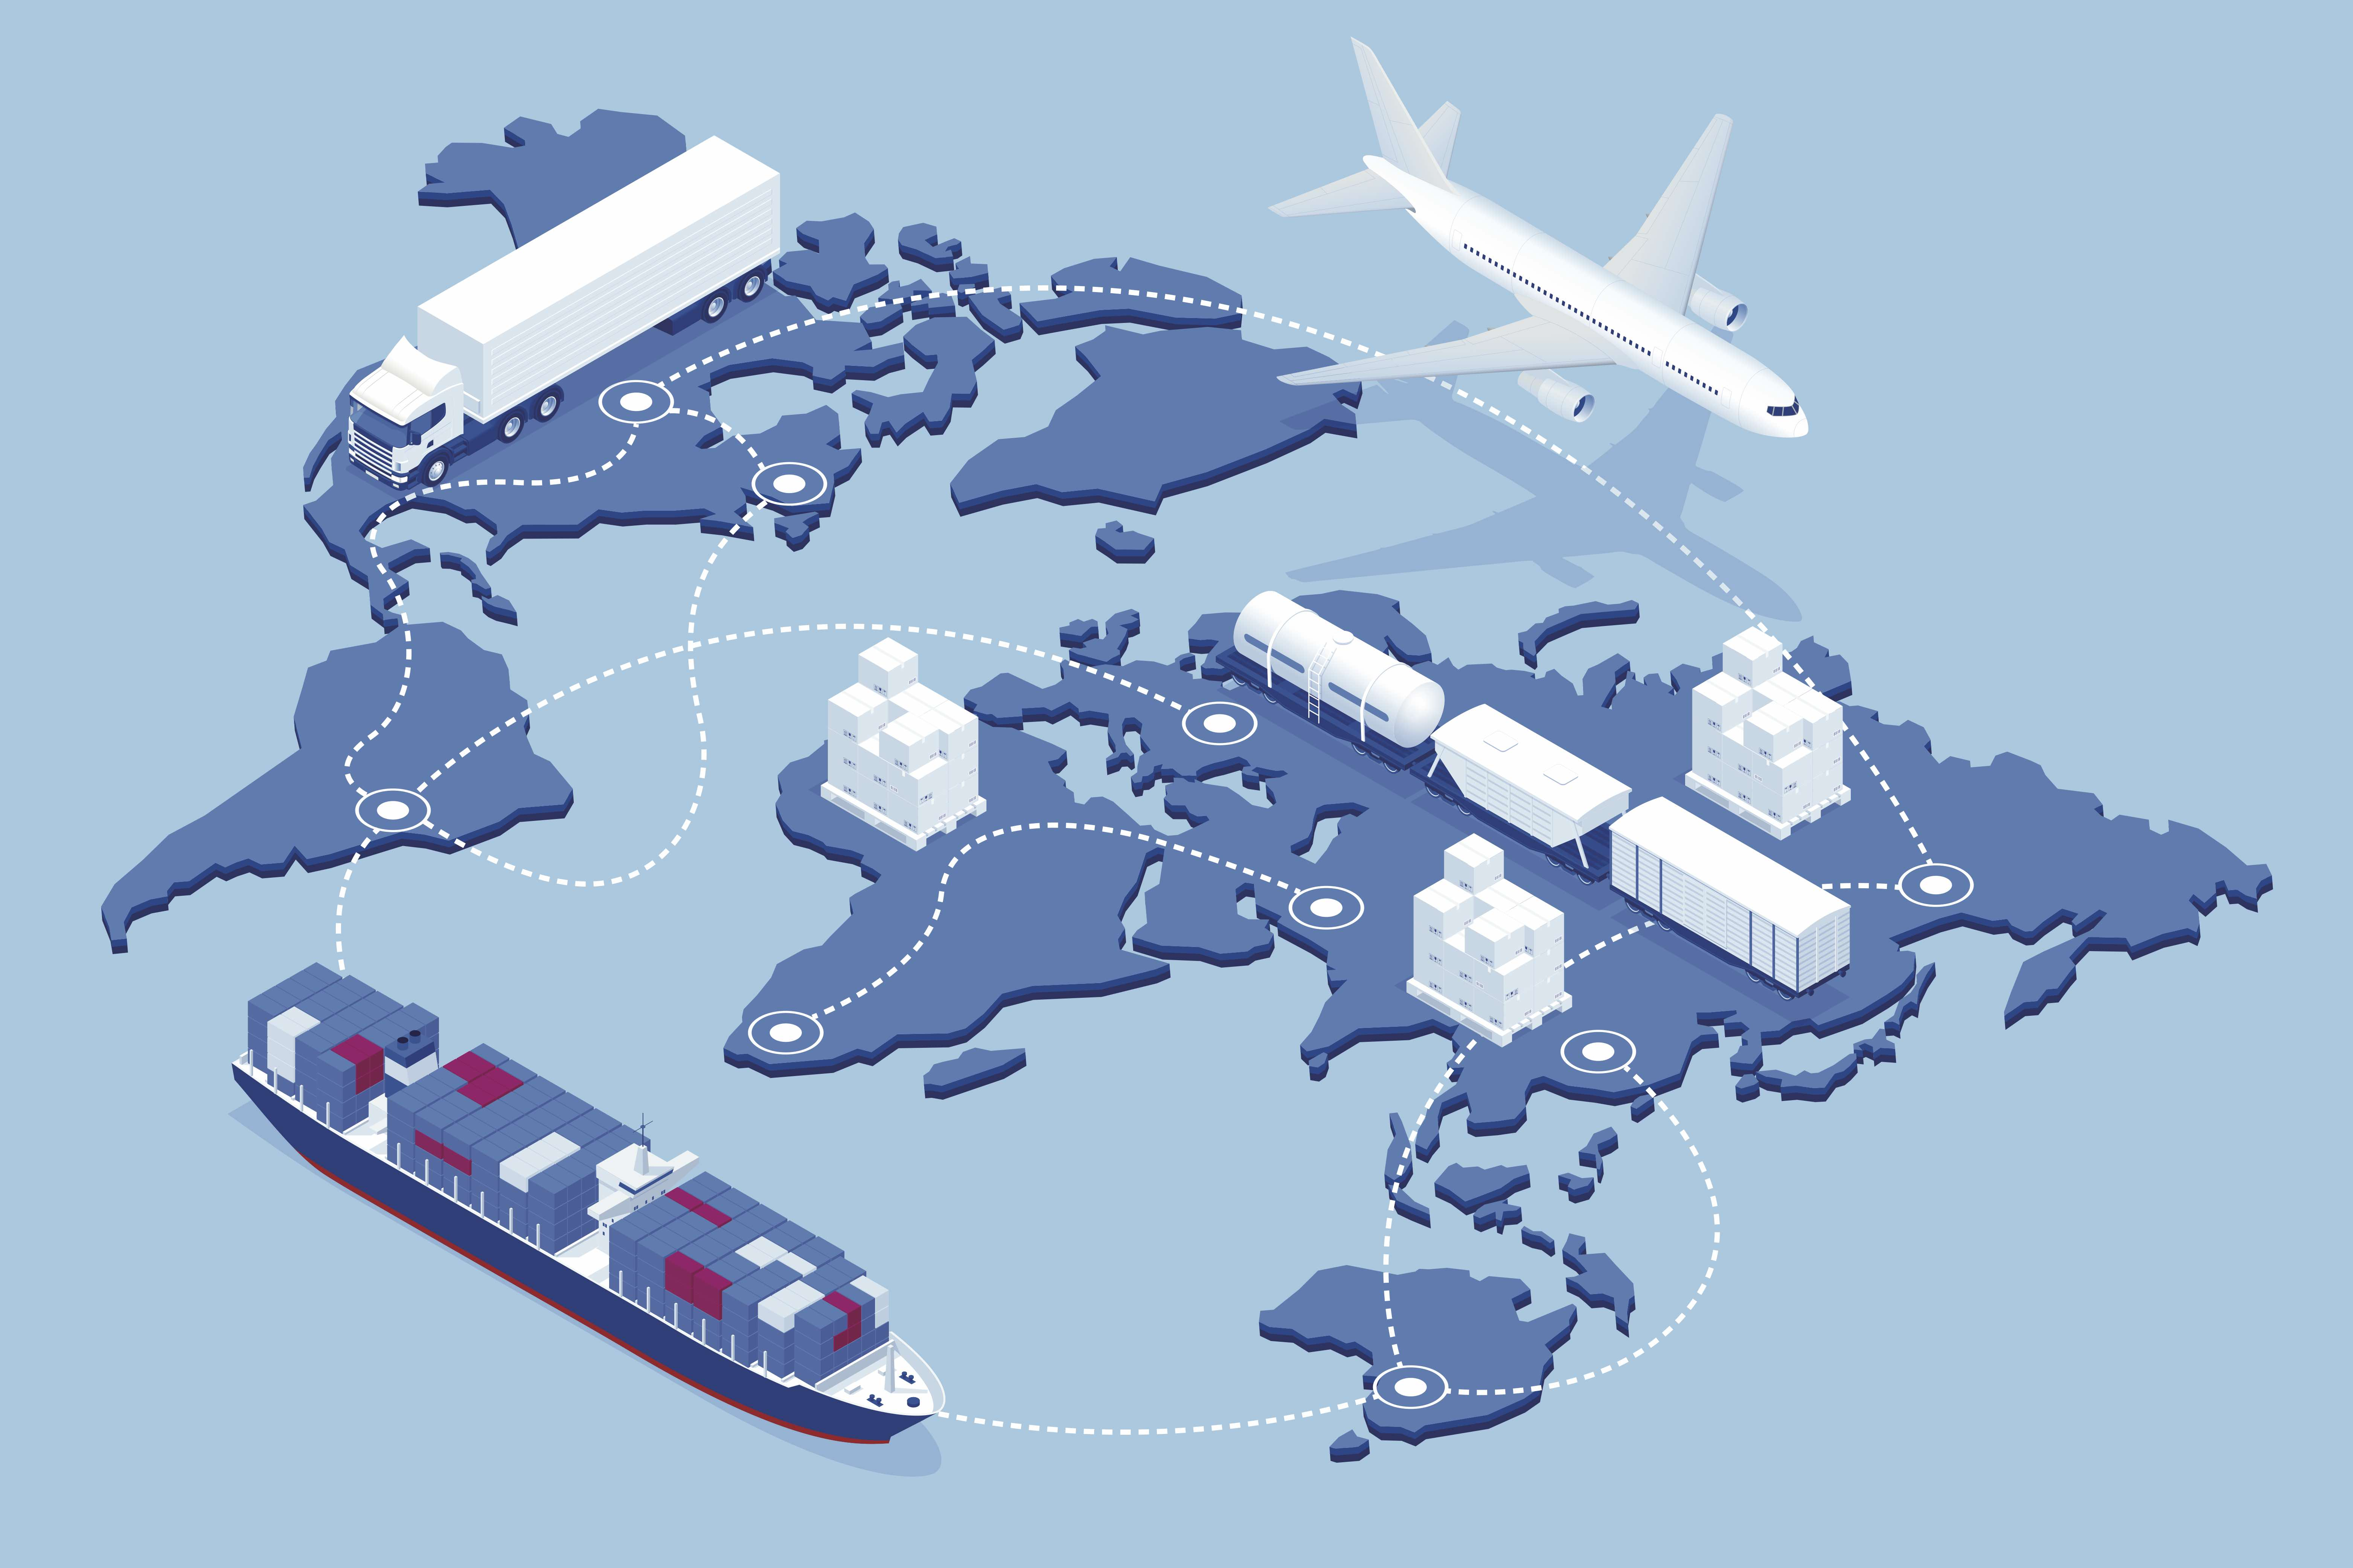 The Winding Glass: Destabilized Supply Chain Here to Stay